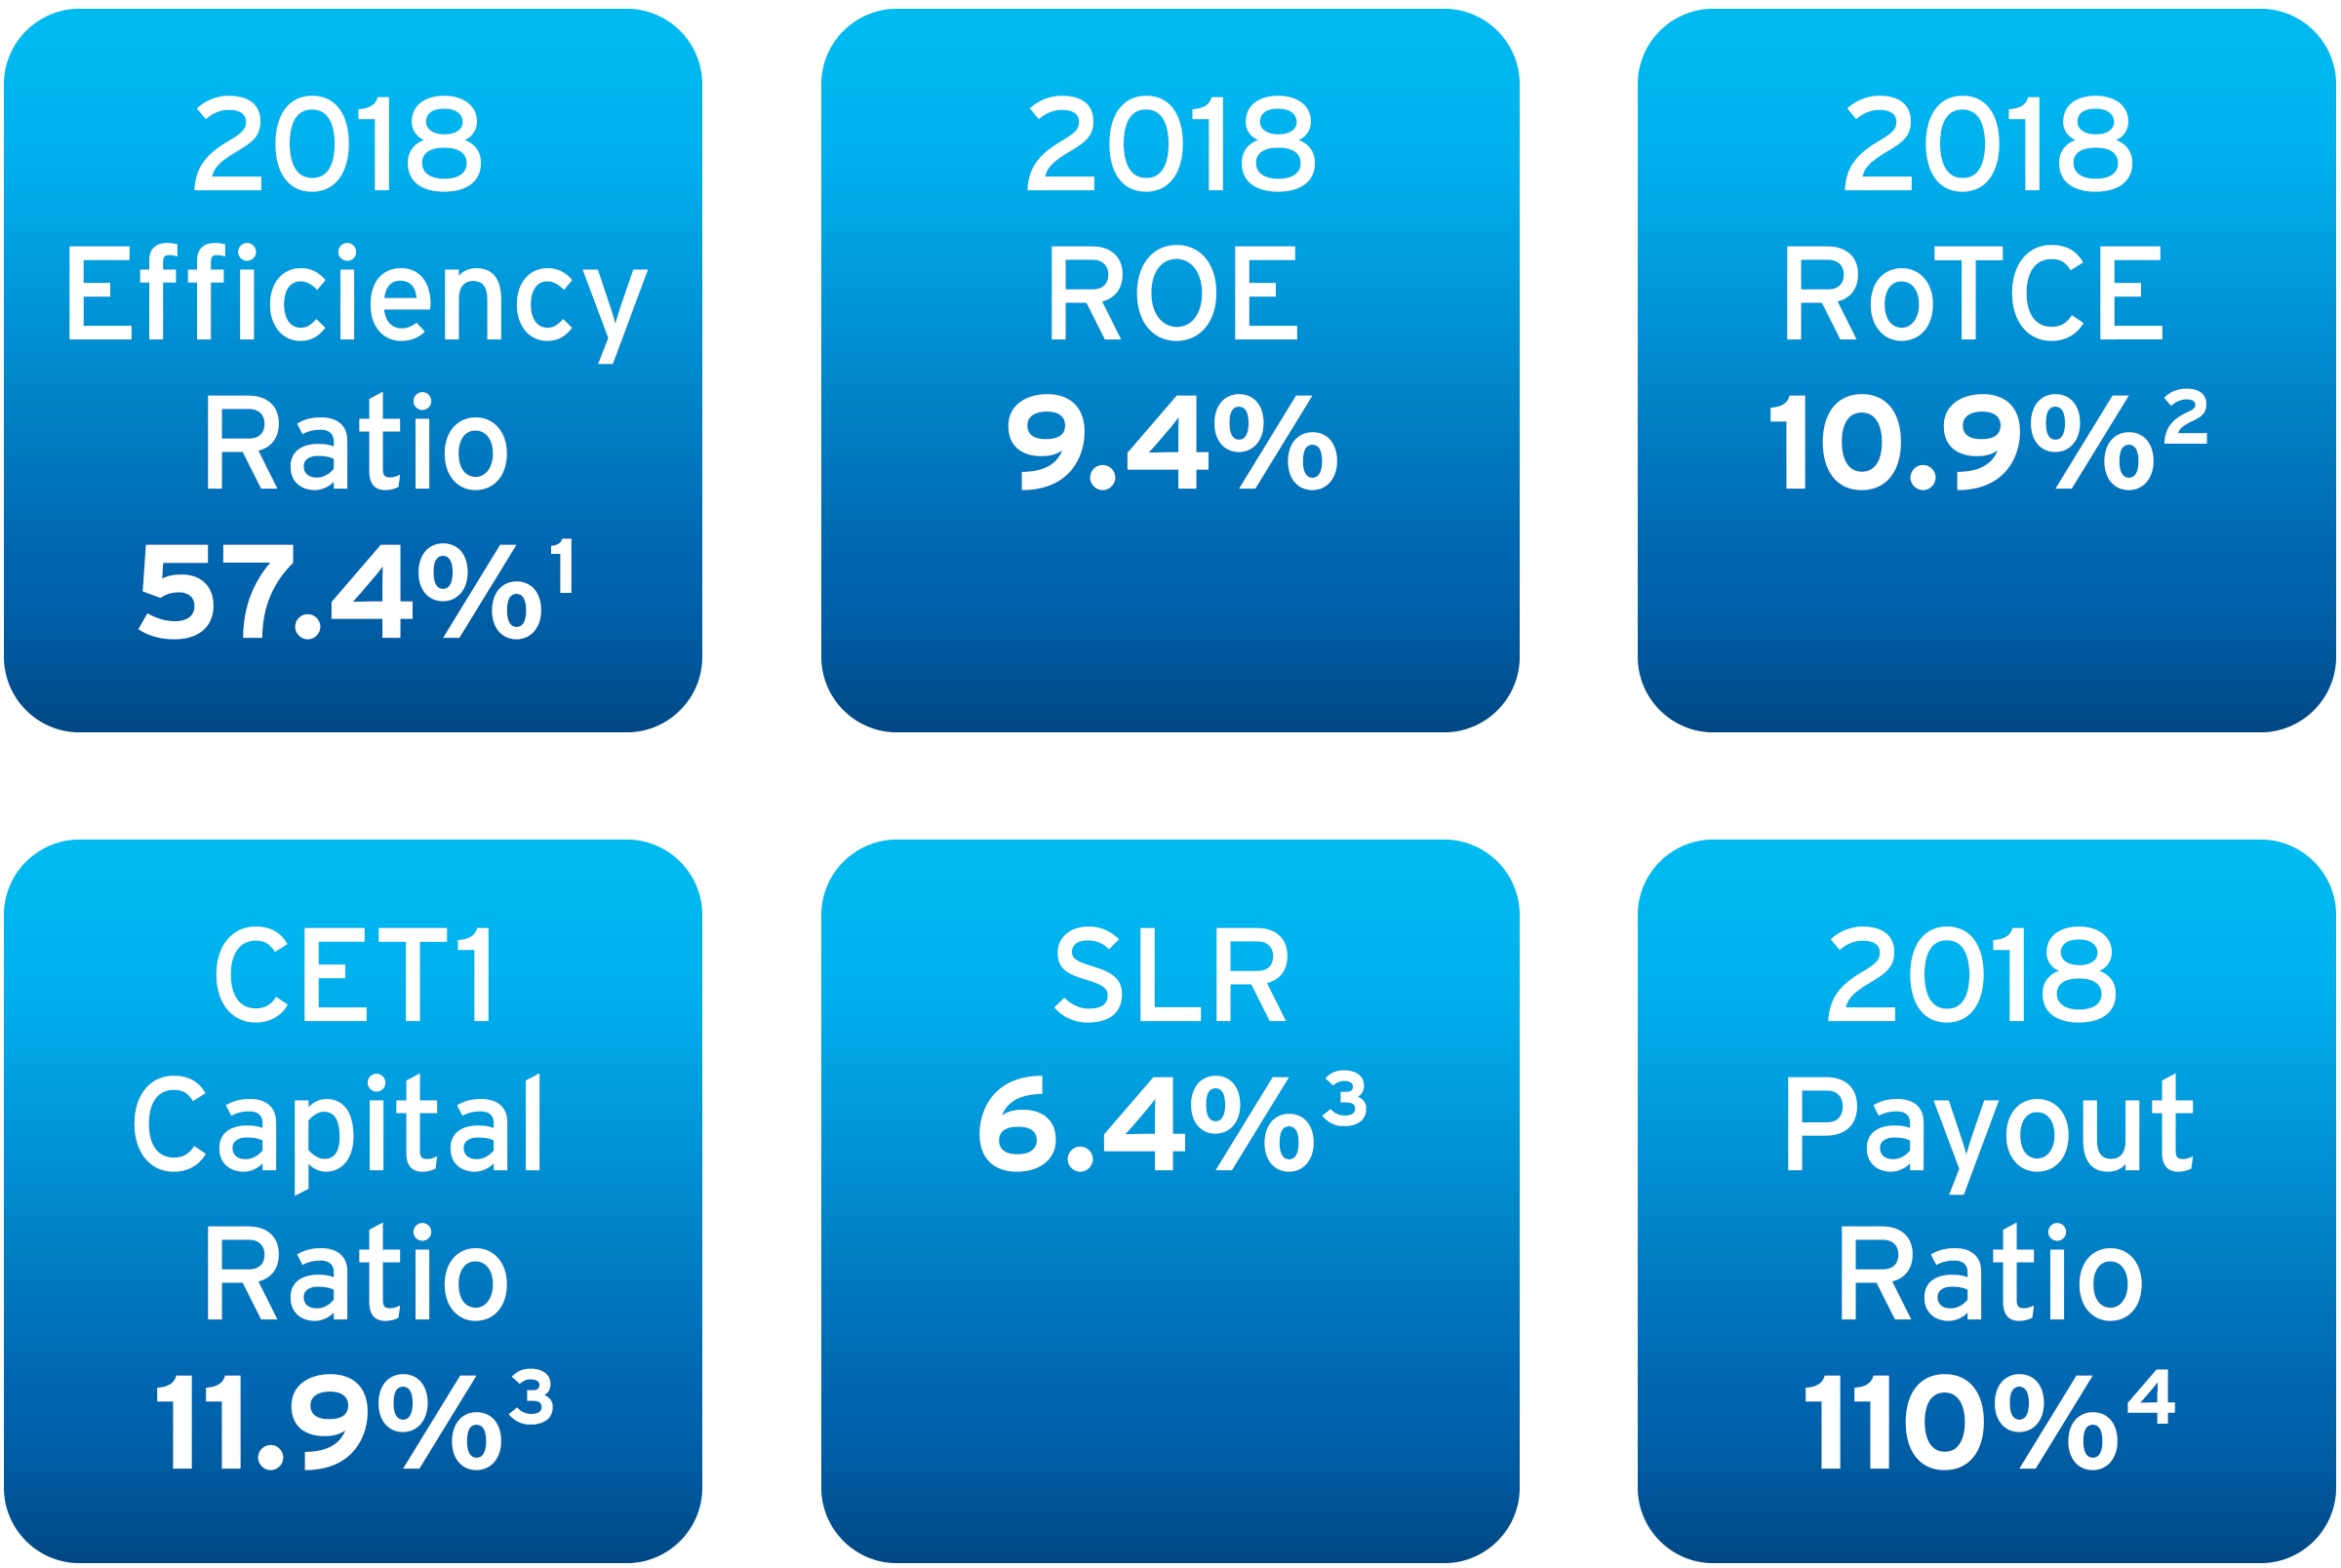 Fourth Quarter and Full Year 2018 Results and Key Metrics